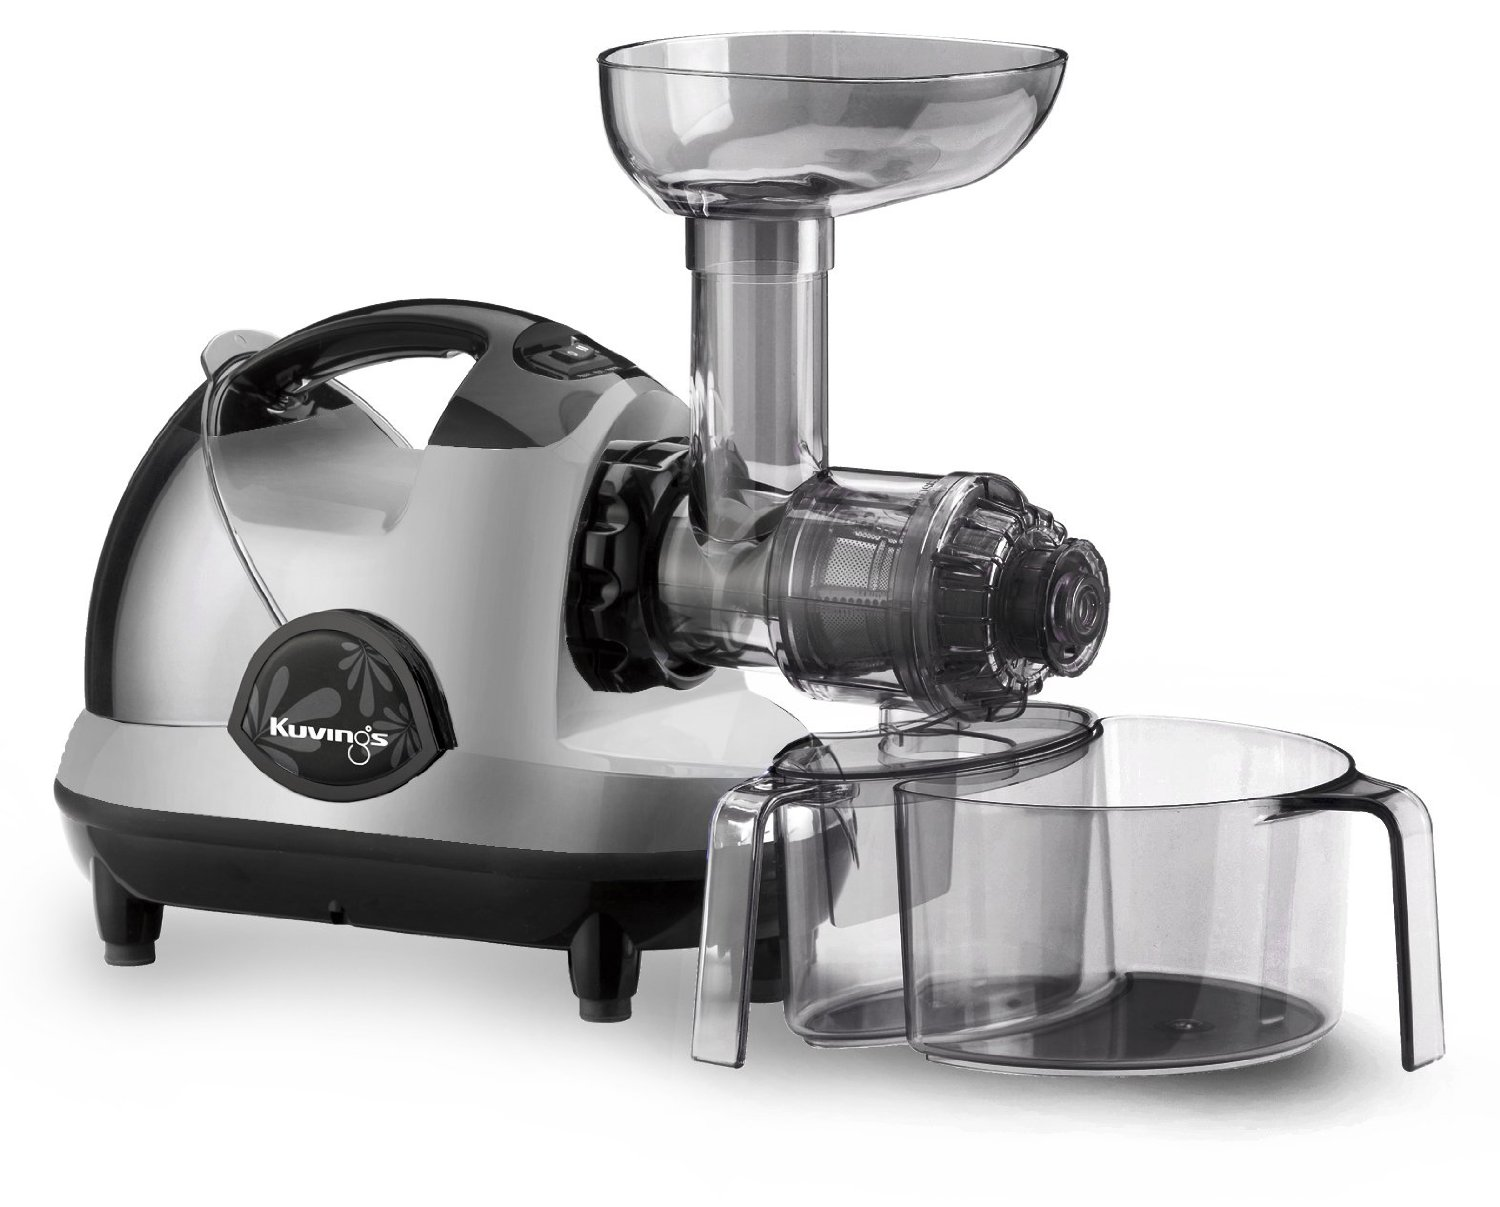 Top Slow Juicer Reviews : Kuvings NJE3580U Masticating Slow Juicer